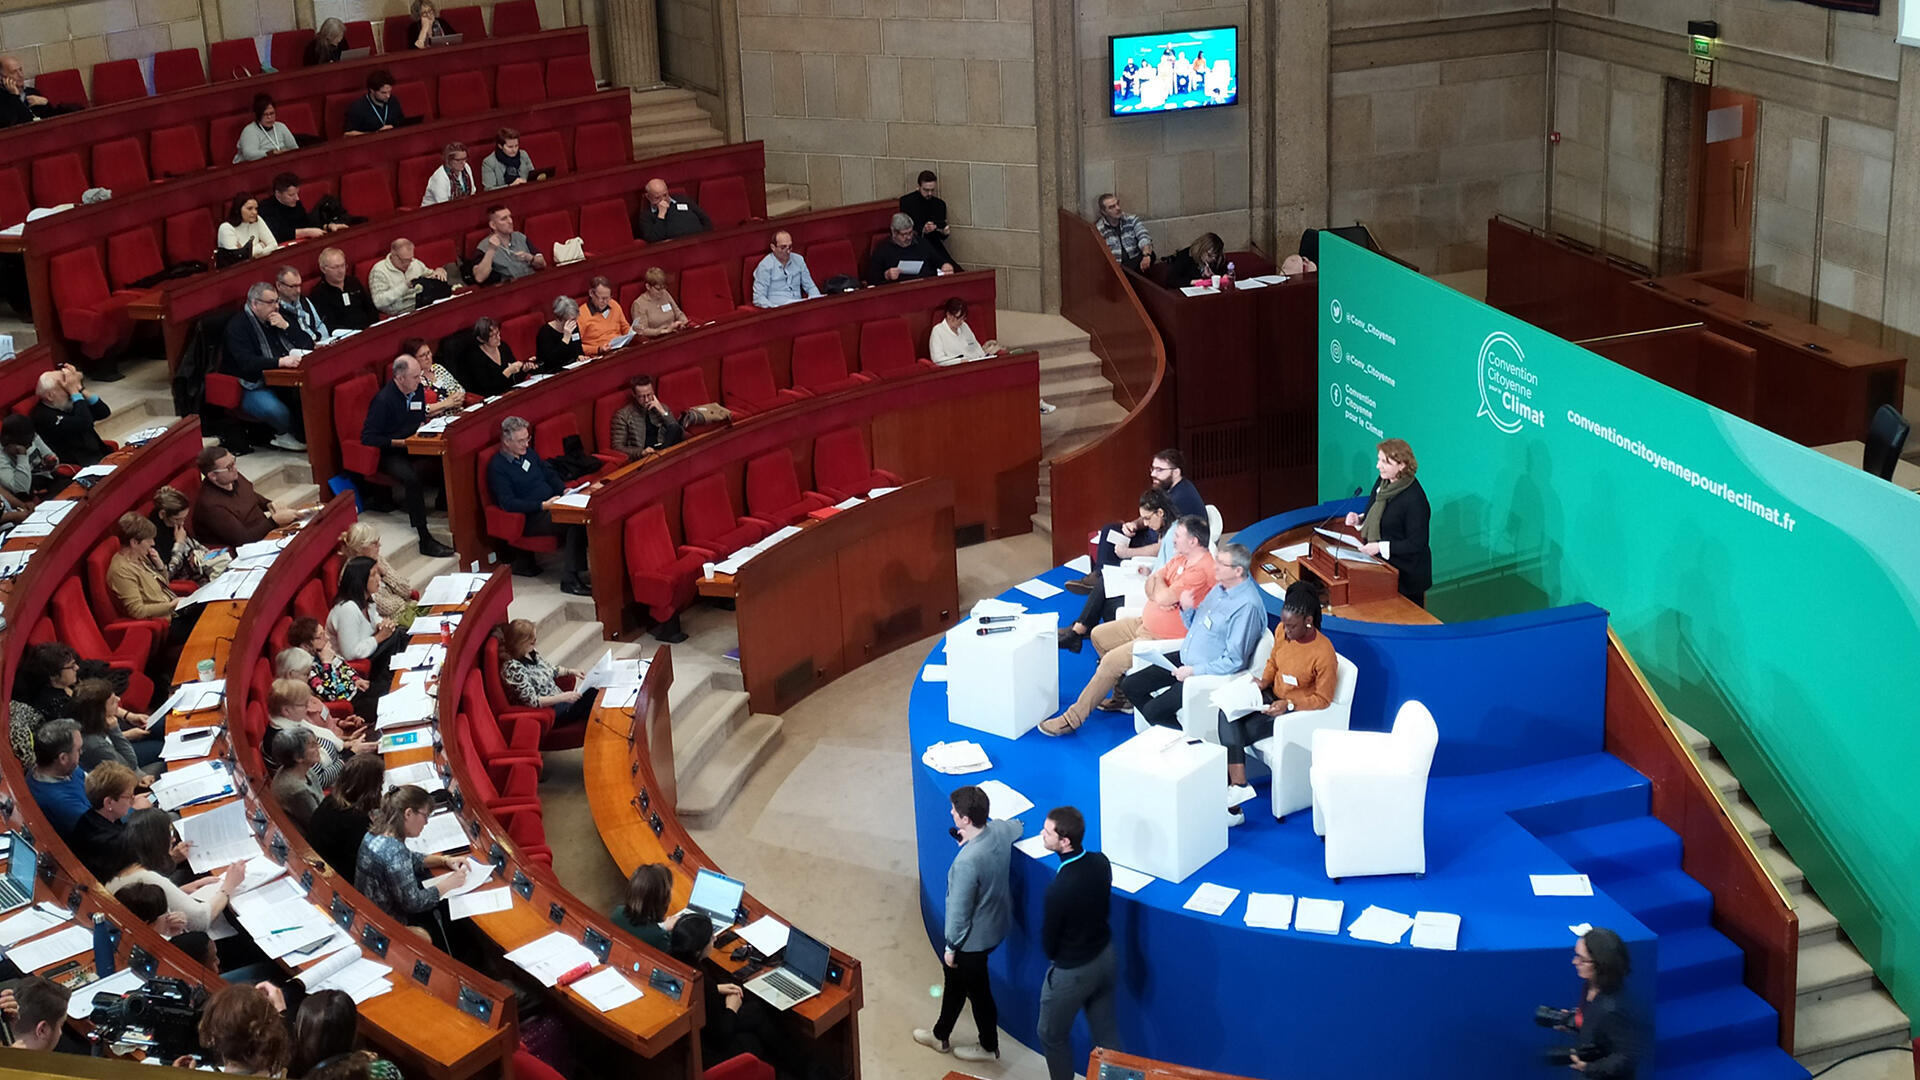 A plenary session of the Citizen convention for the climate, 20 March 2020.